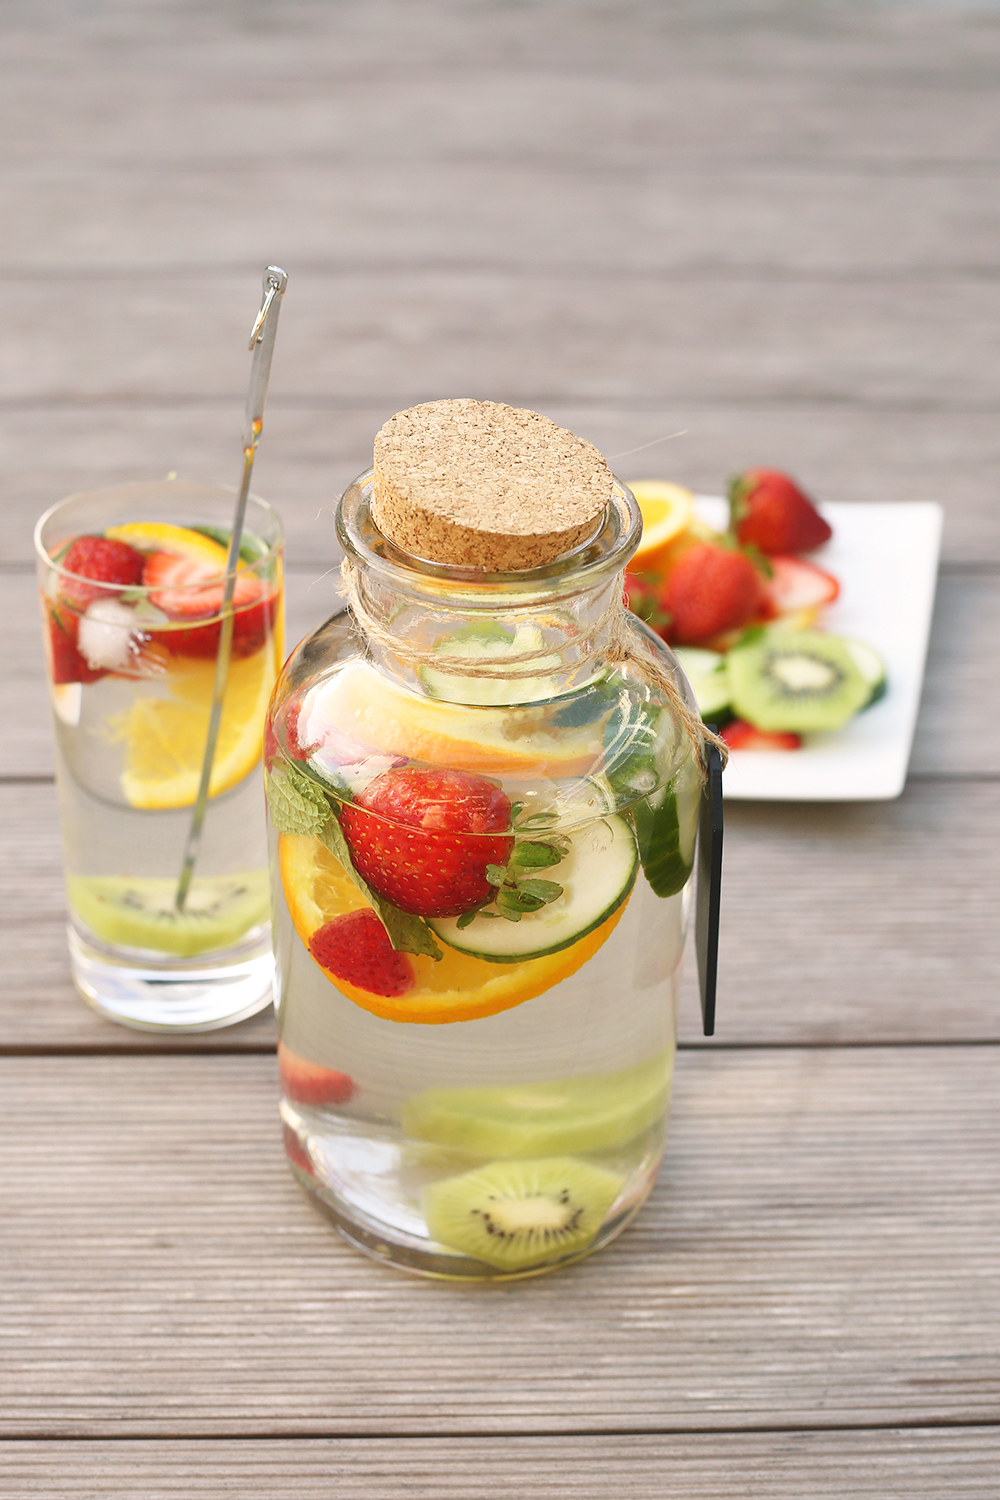 So fresh and citrusy, this water is an everyday favorite. The water's flavor has the sweetness of orange juice but without the added sugar. You'll love it, especially if you are seeking an intensely flavored infused water to replace soft drinks or commercial fruit juice.